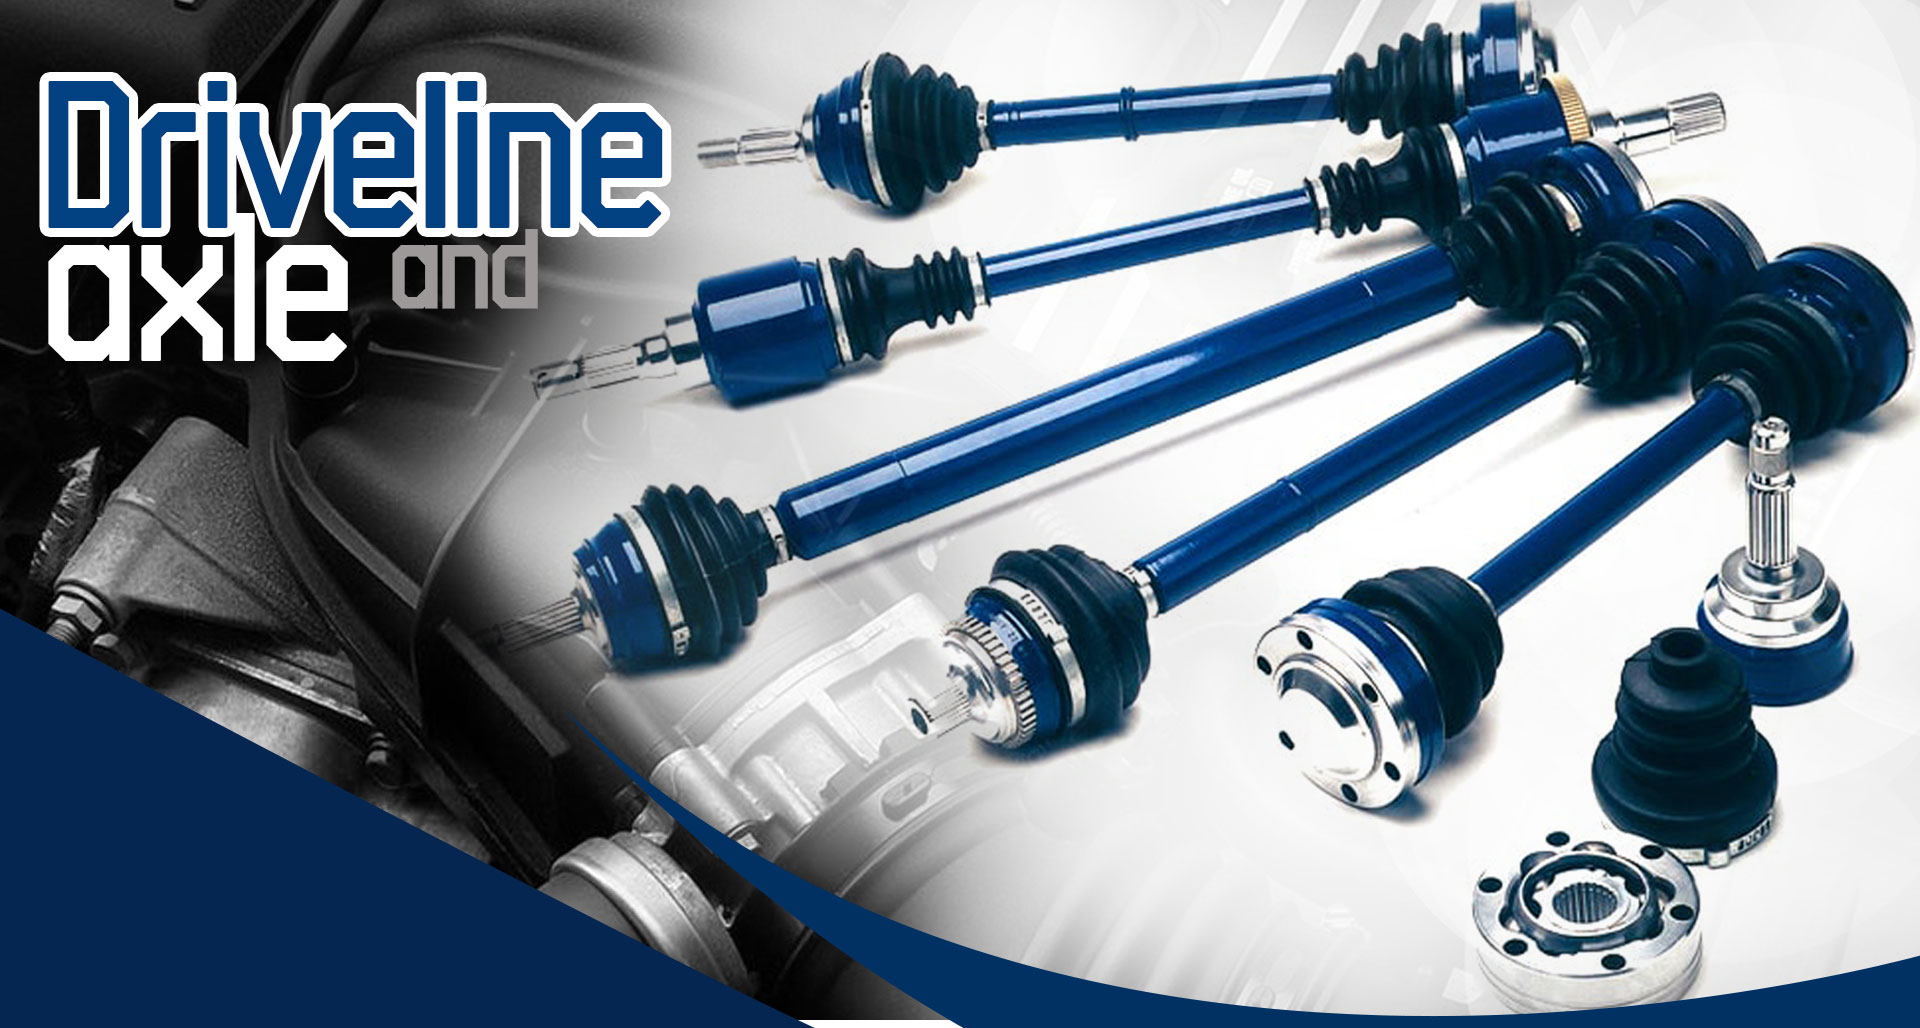 Buy Driveline and axle for your Car online in Pakistan From